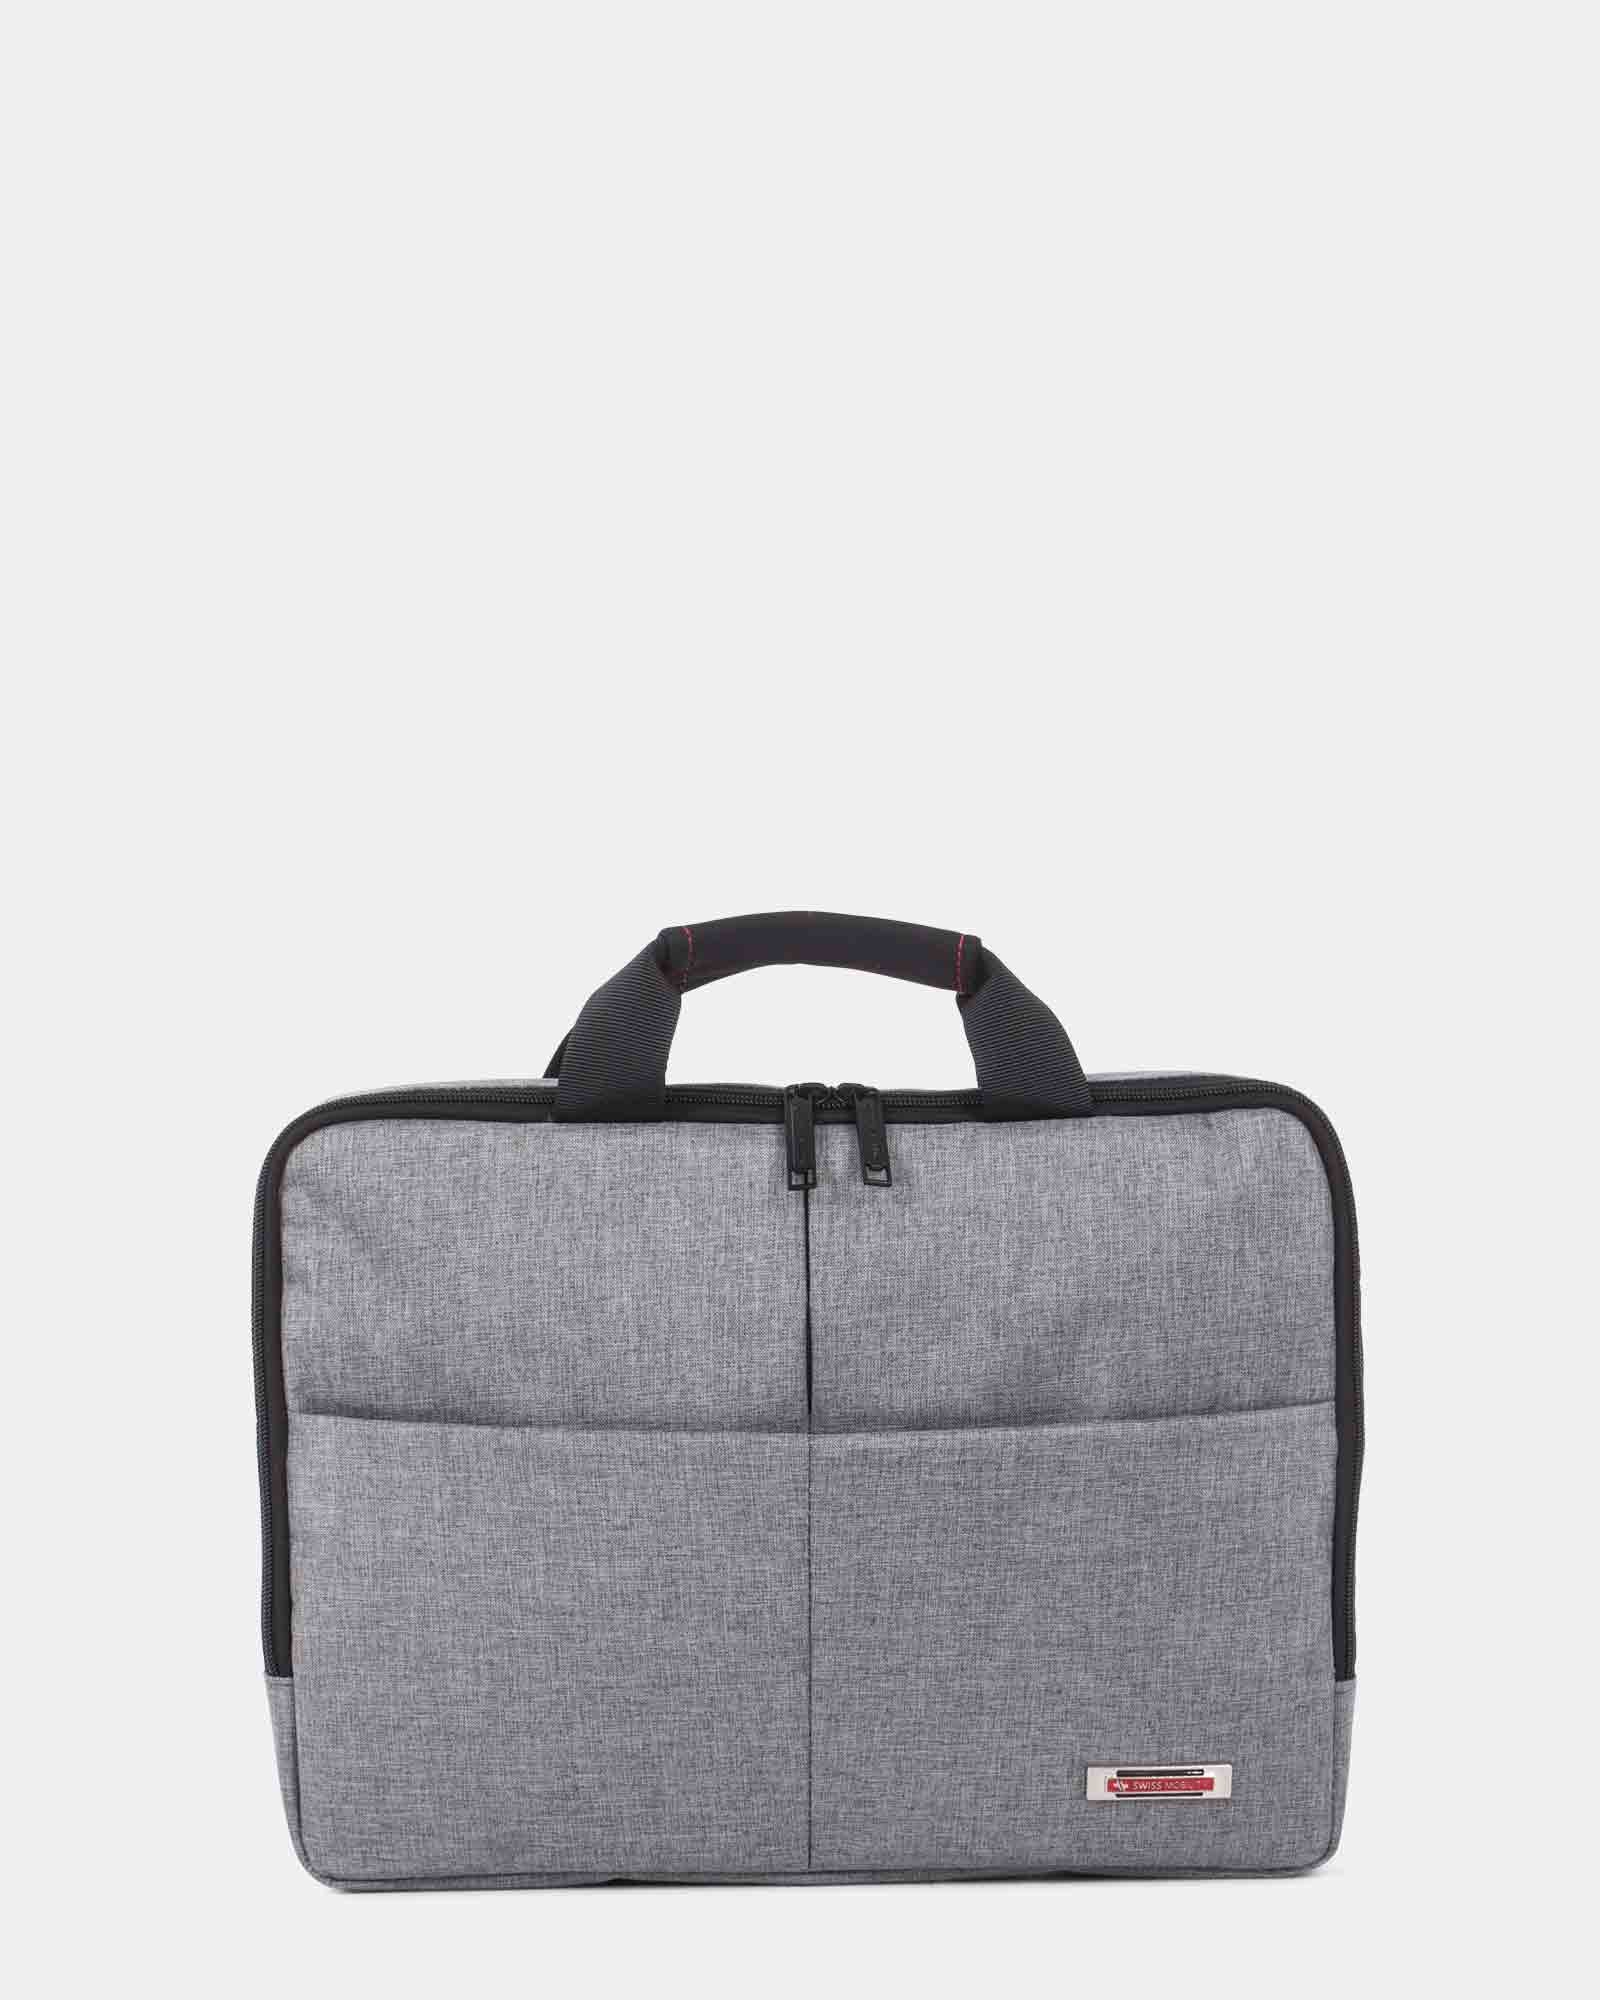 Sterling-Briefcase - Swiss Mobility - Zoom